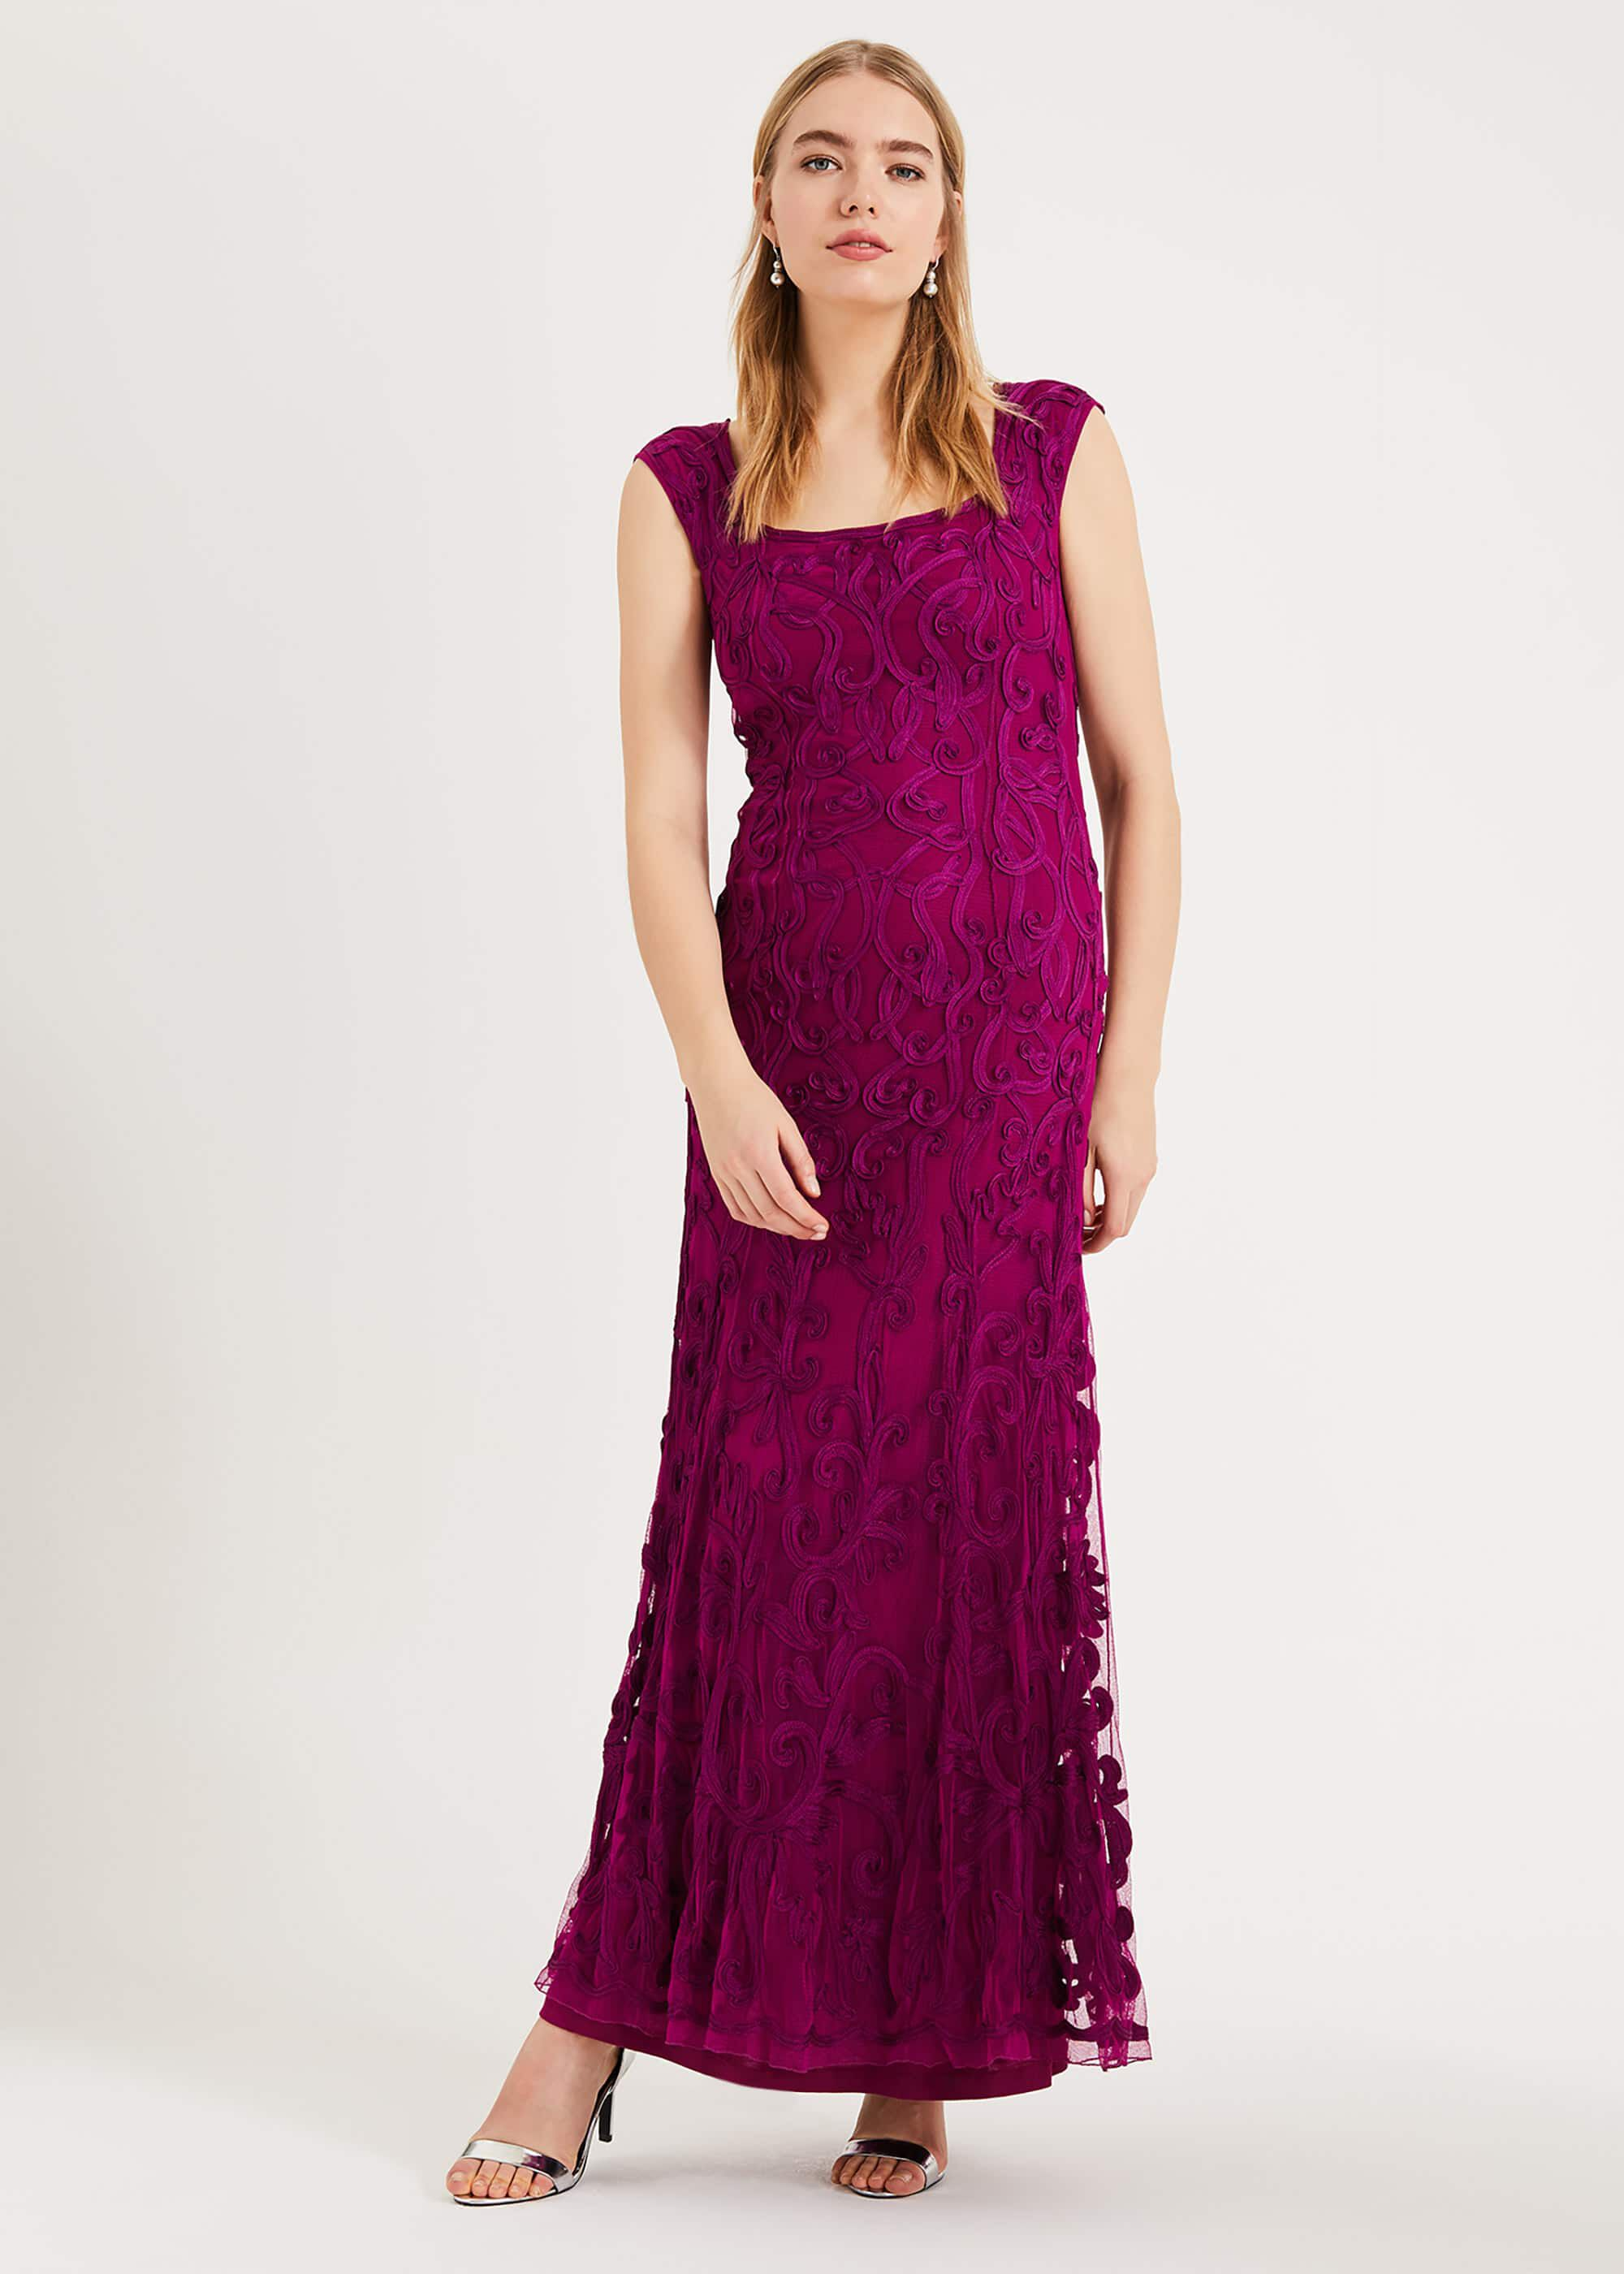 Phase Eight Abbie Tapework Maxi Dress, Purple, Maxi, Occasion Dress